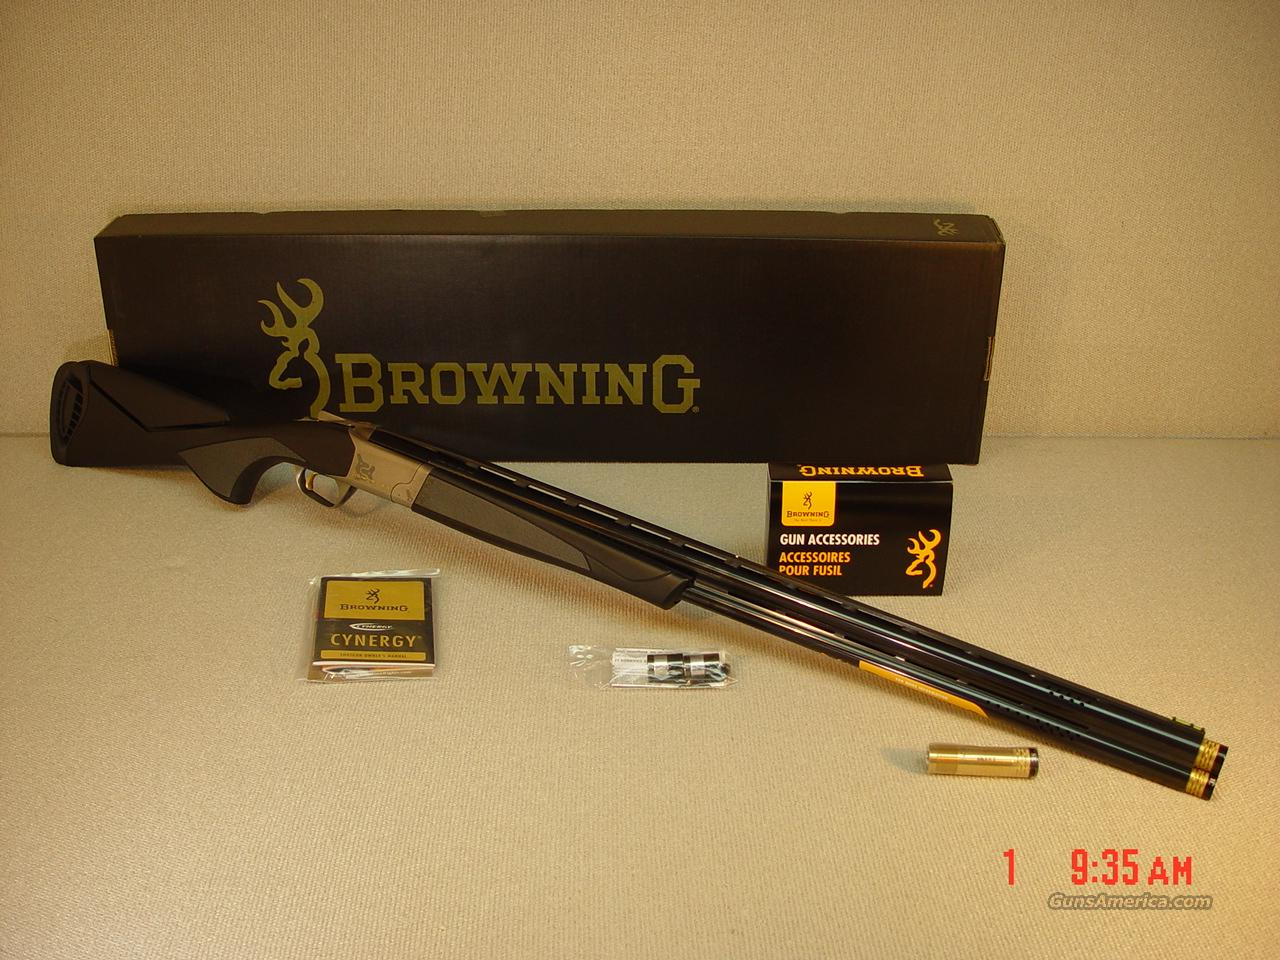 "BROWNING CYNERGY SPORTING ADJUSTABLE COMB-SYNTHETIC 30""  Guns > Shotguns > Browning Shotguns > Over Unders > Cynergy > Hunting"